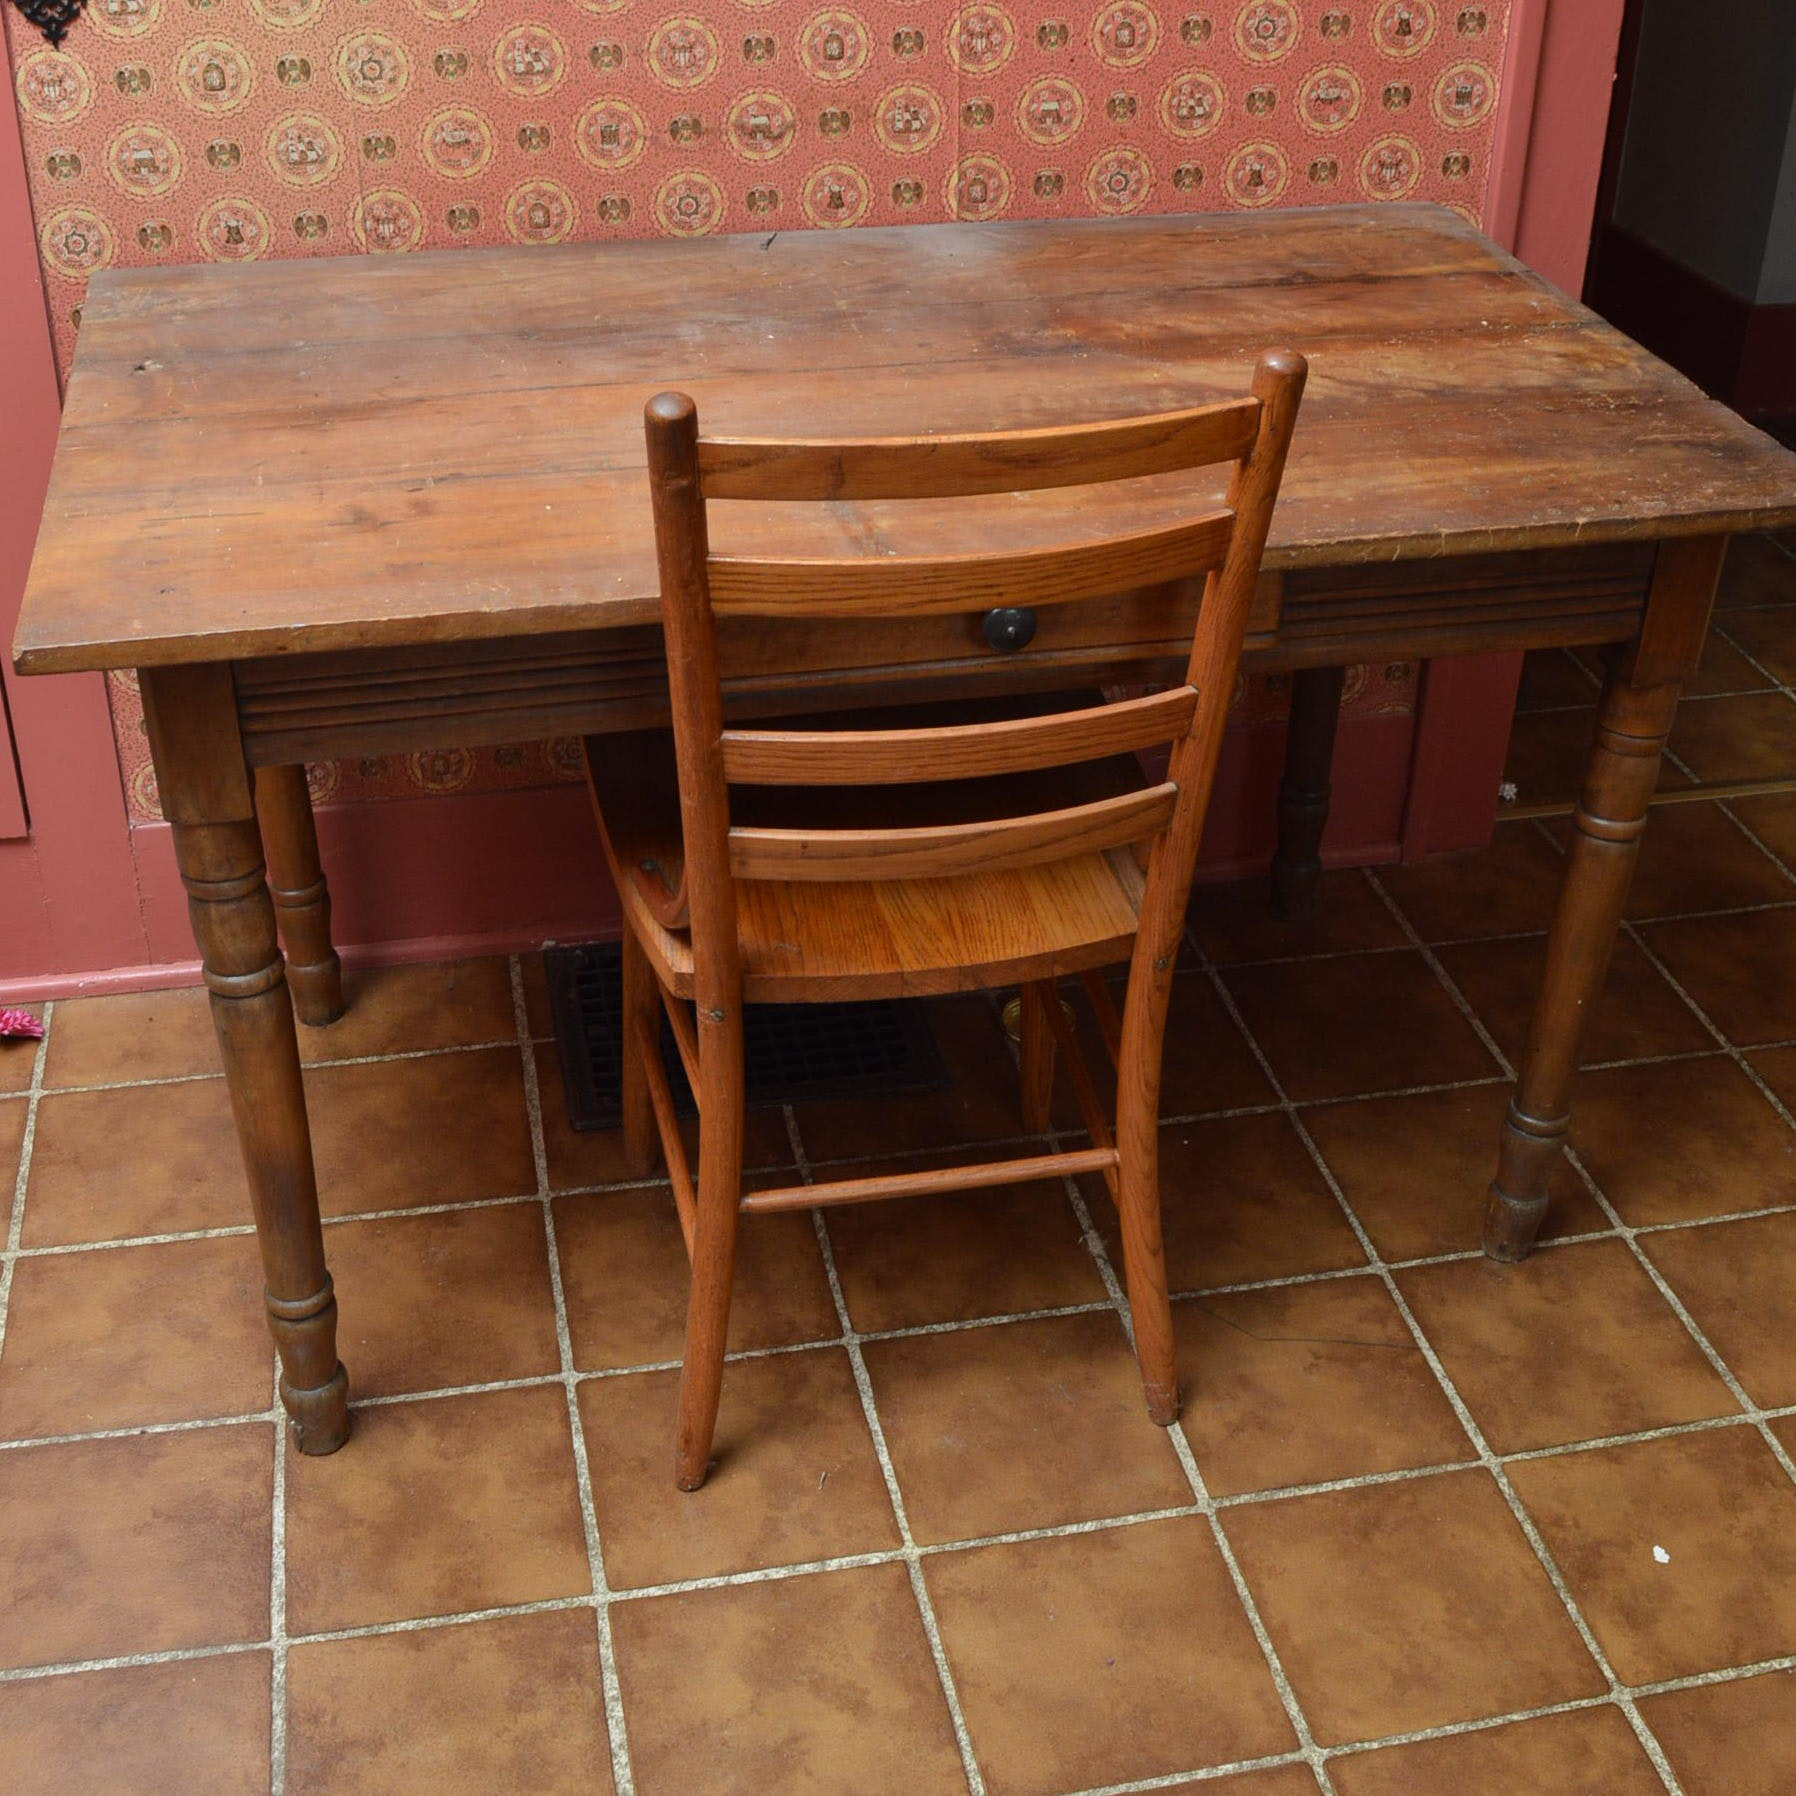 Antique Table with Pine Chair